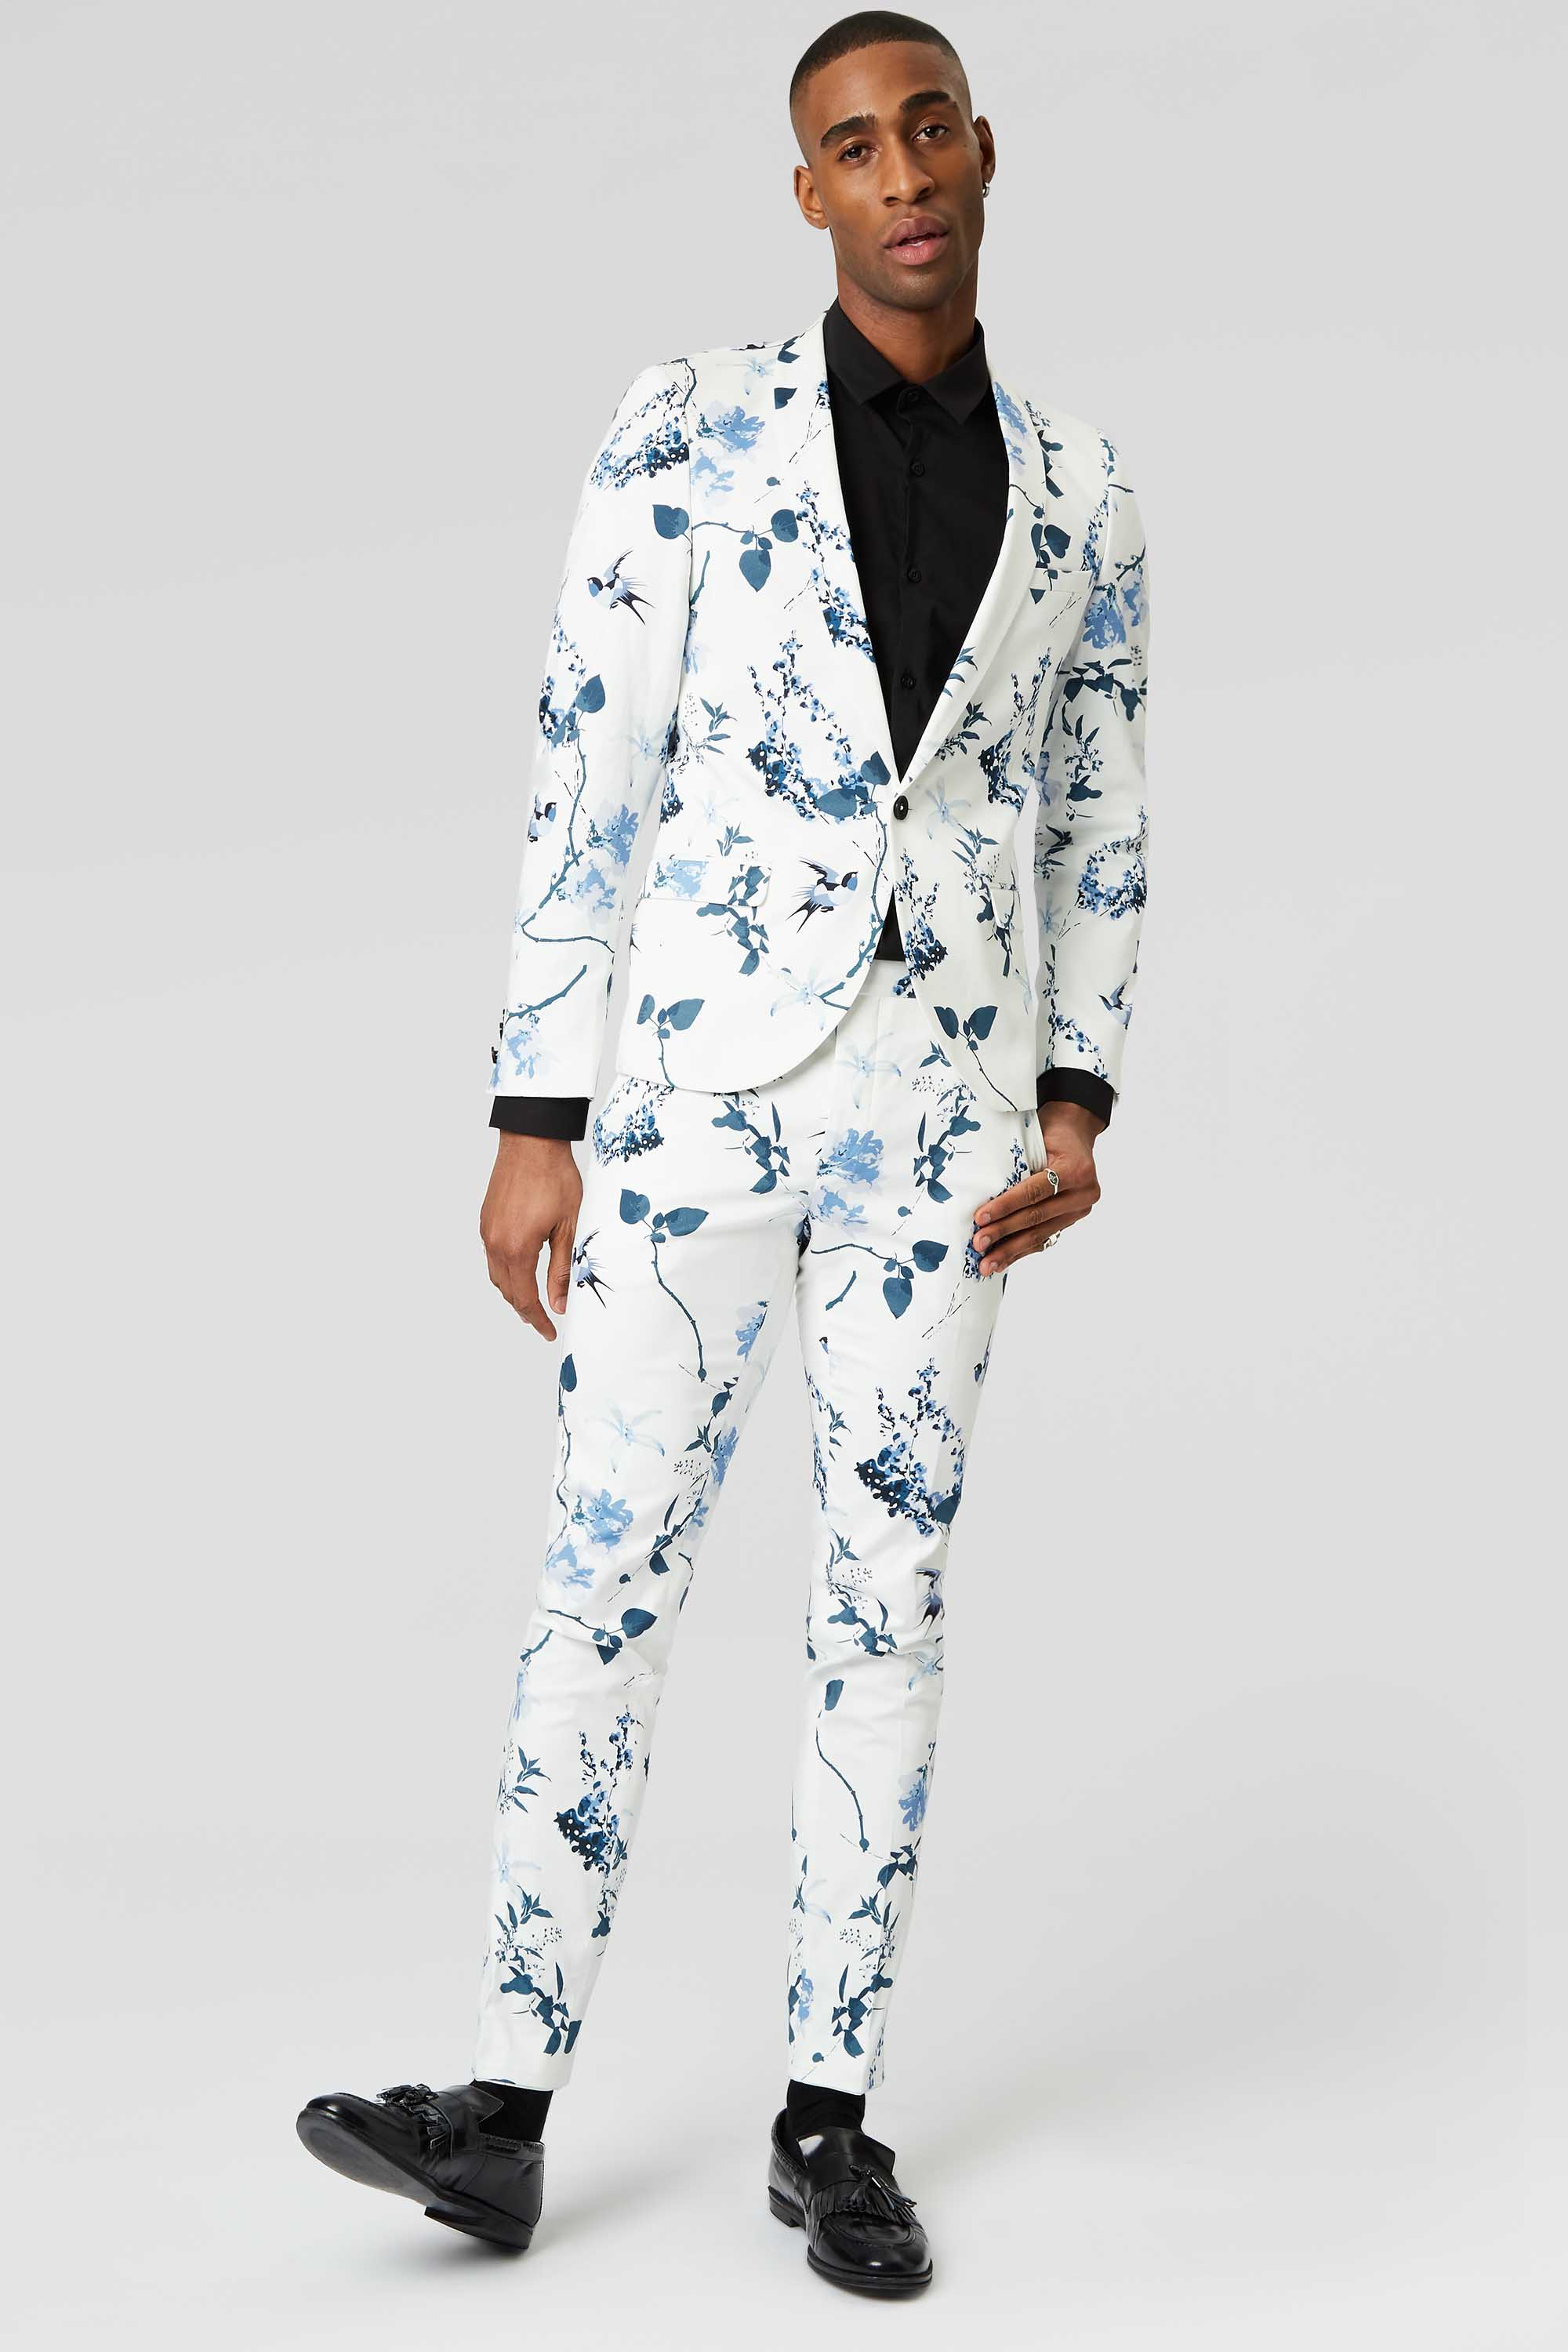 POM SKINNY FIT WHITE SUIT JACKET WITH FLORAL PRINT